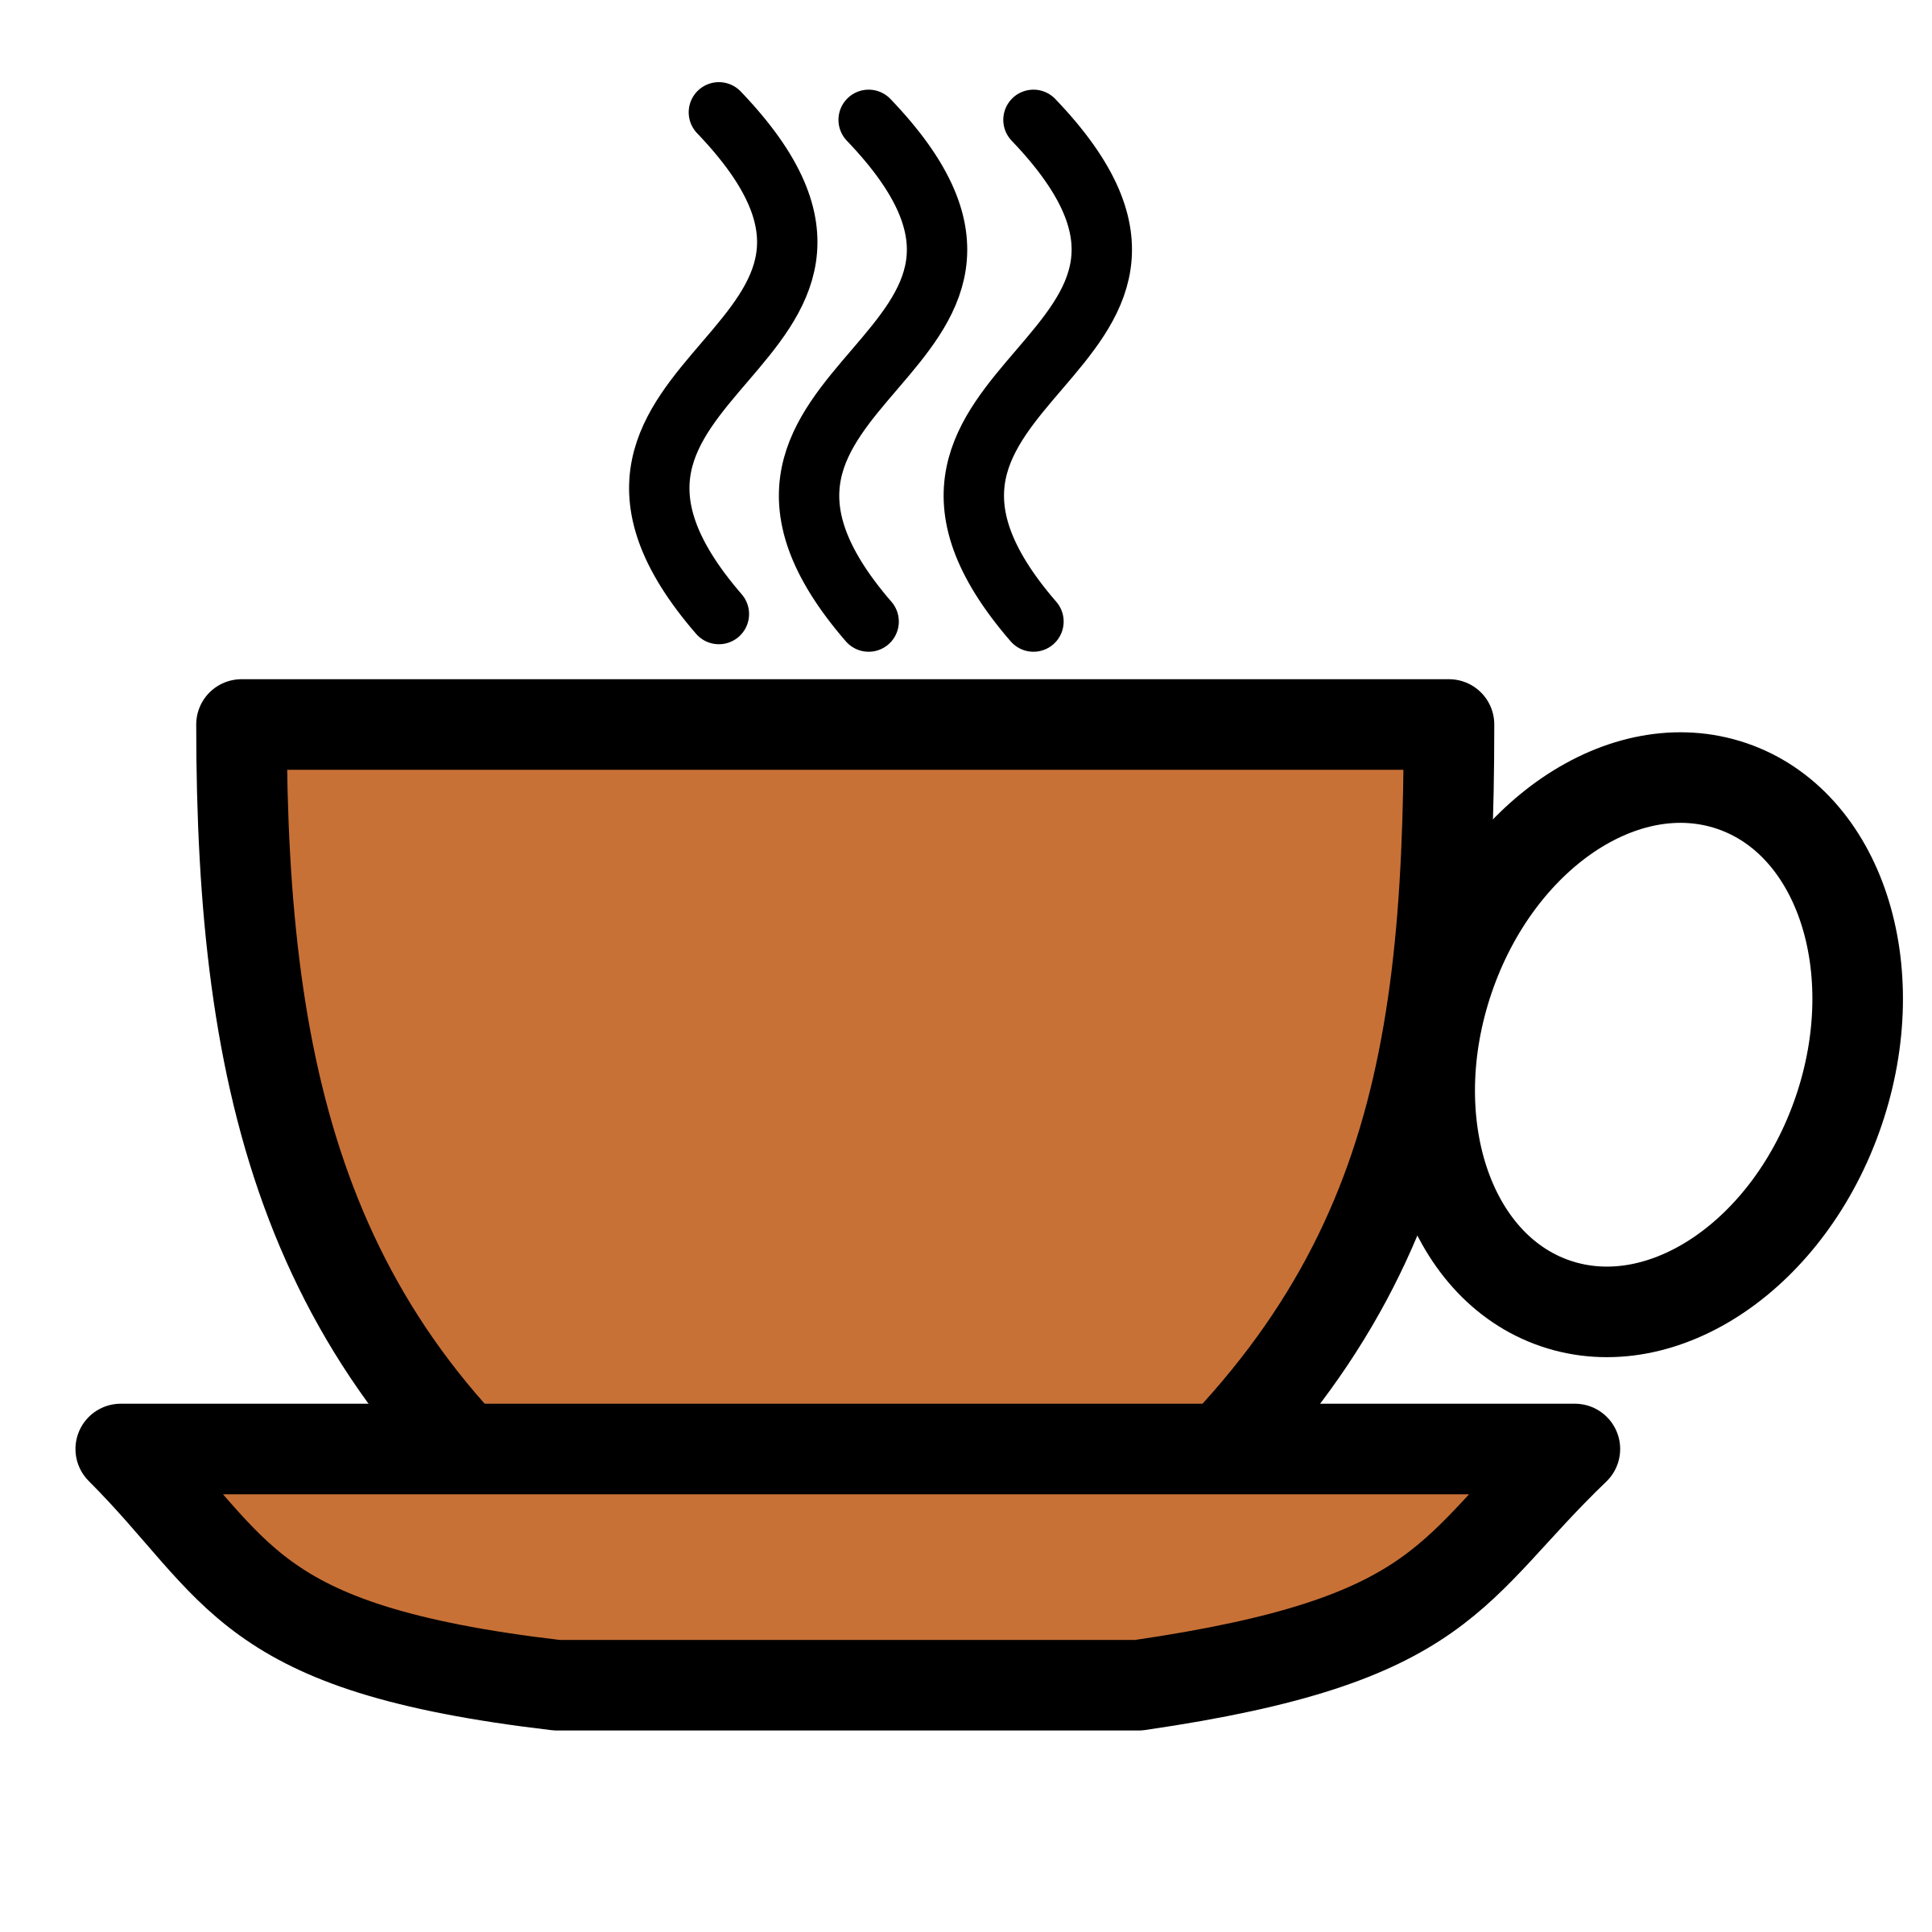 Vector cafe. Clipart coffee cup icon